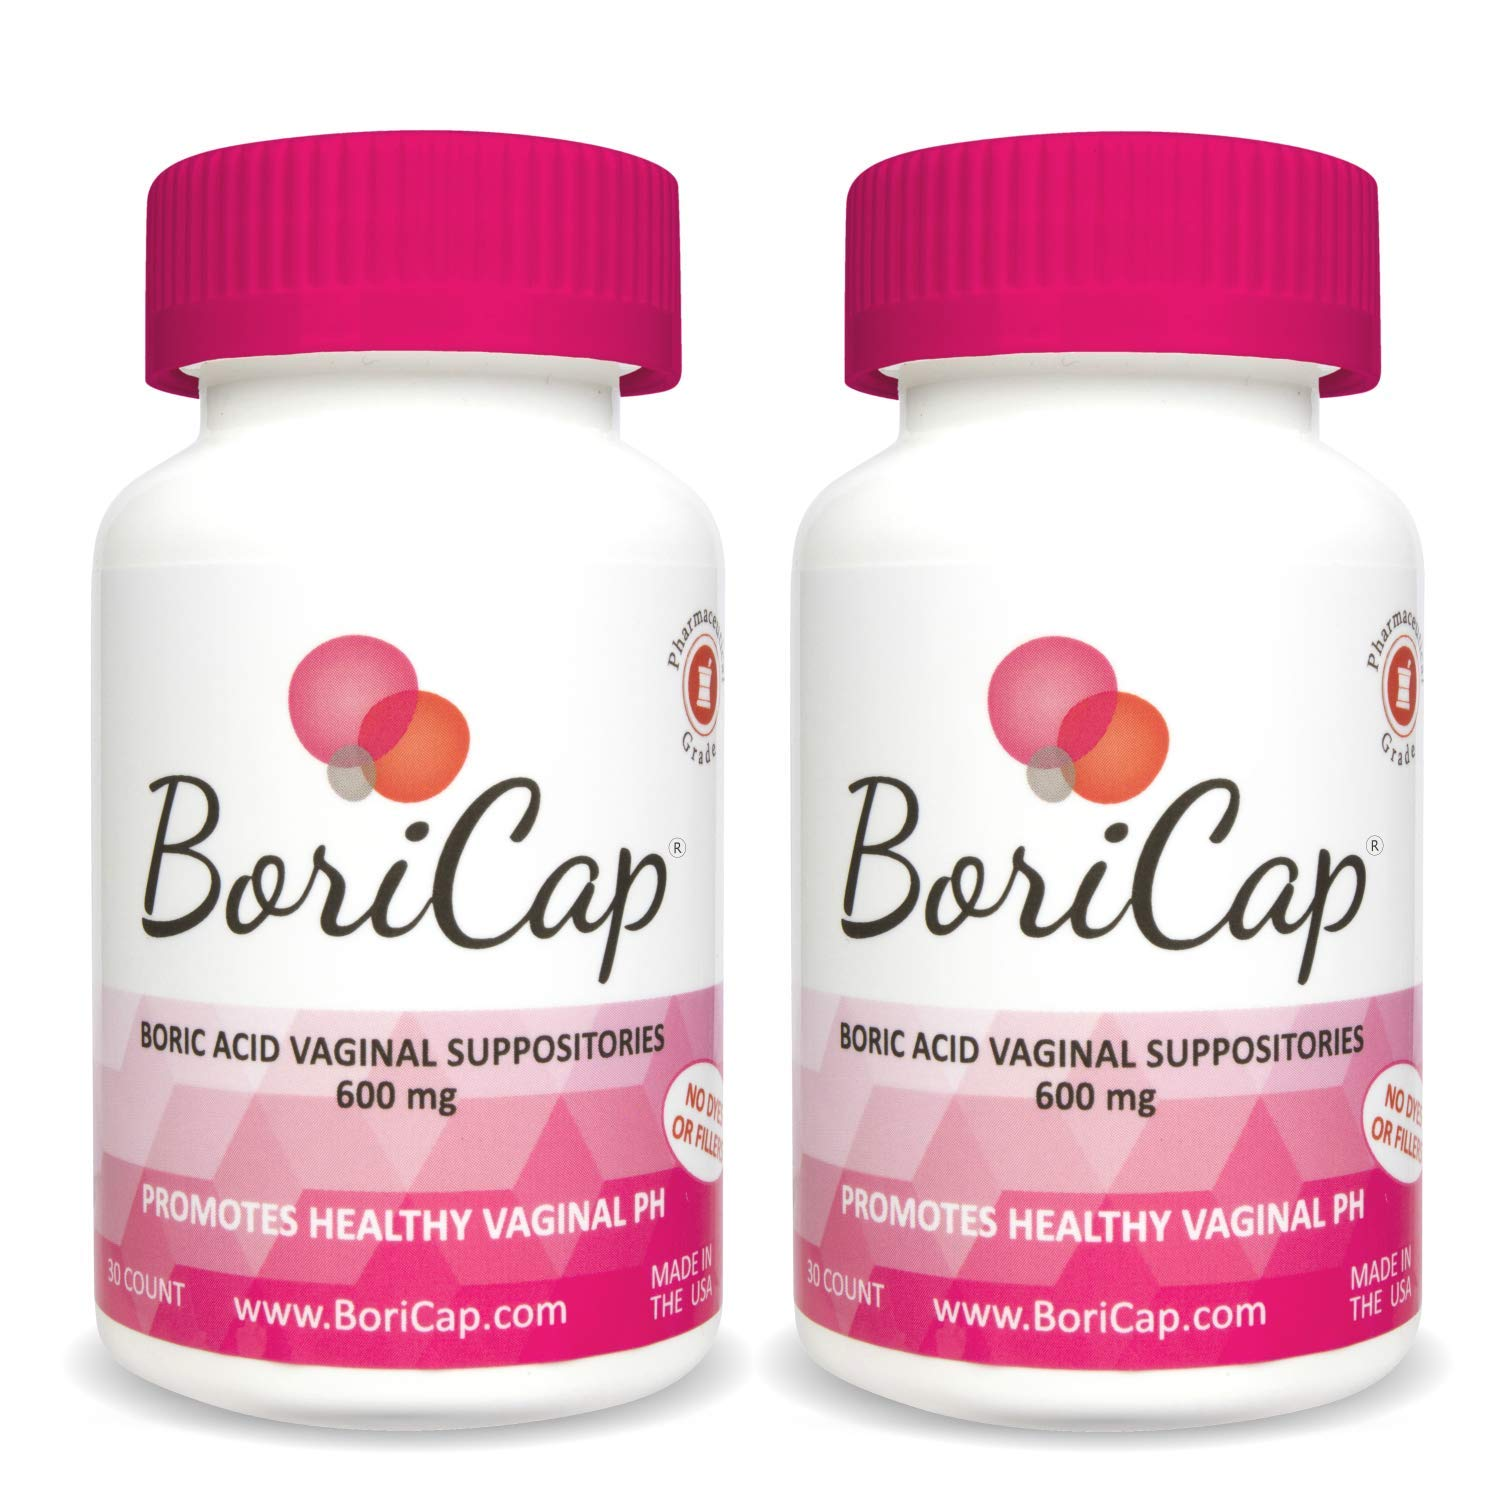 BoriCap Boric Acid Vaginal Suppositories | Capsules Size 00 | No Fillers, Flow Agents or Artificial Colors | Gynecologist Instructions Included | Made in The USA (2) by BoriCap